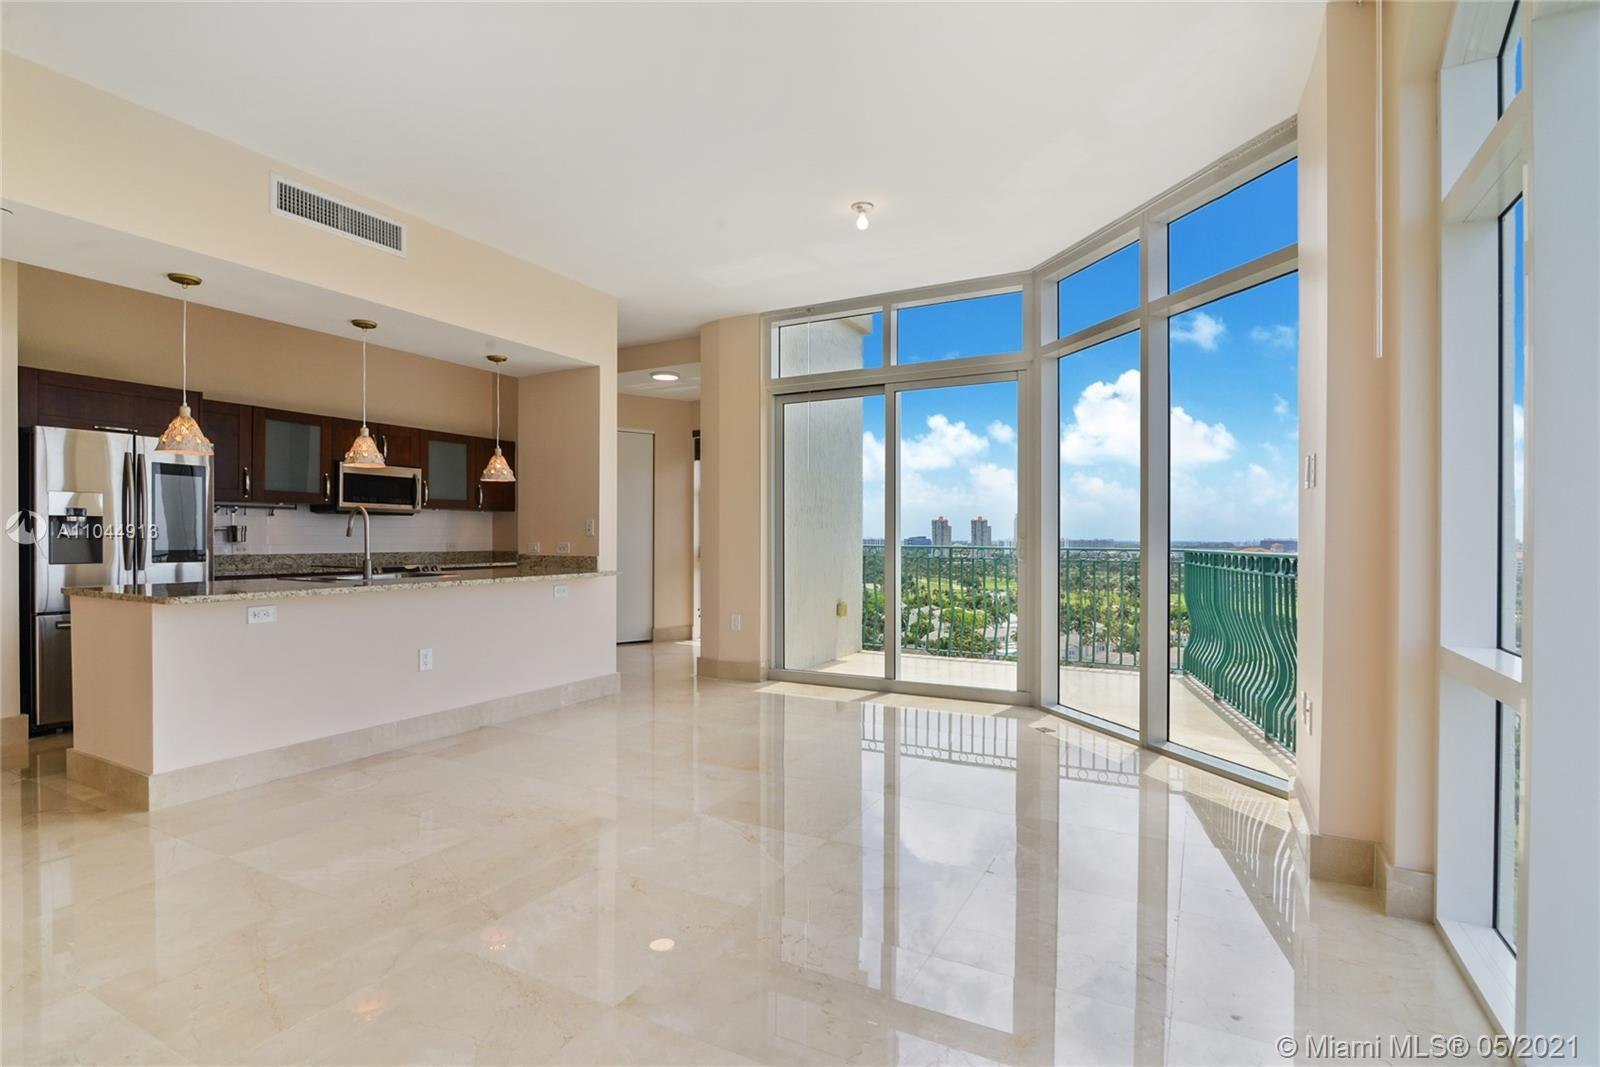 Best Unit In All Of Turnberry Village. Unit has Floor To Ceilings Windows Up To 10 Feet Tall. Marble